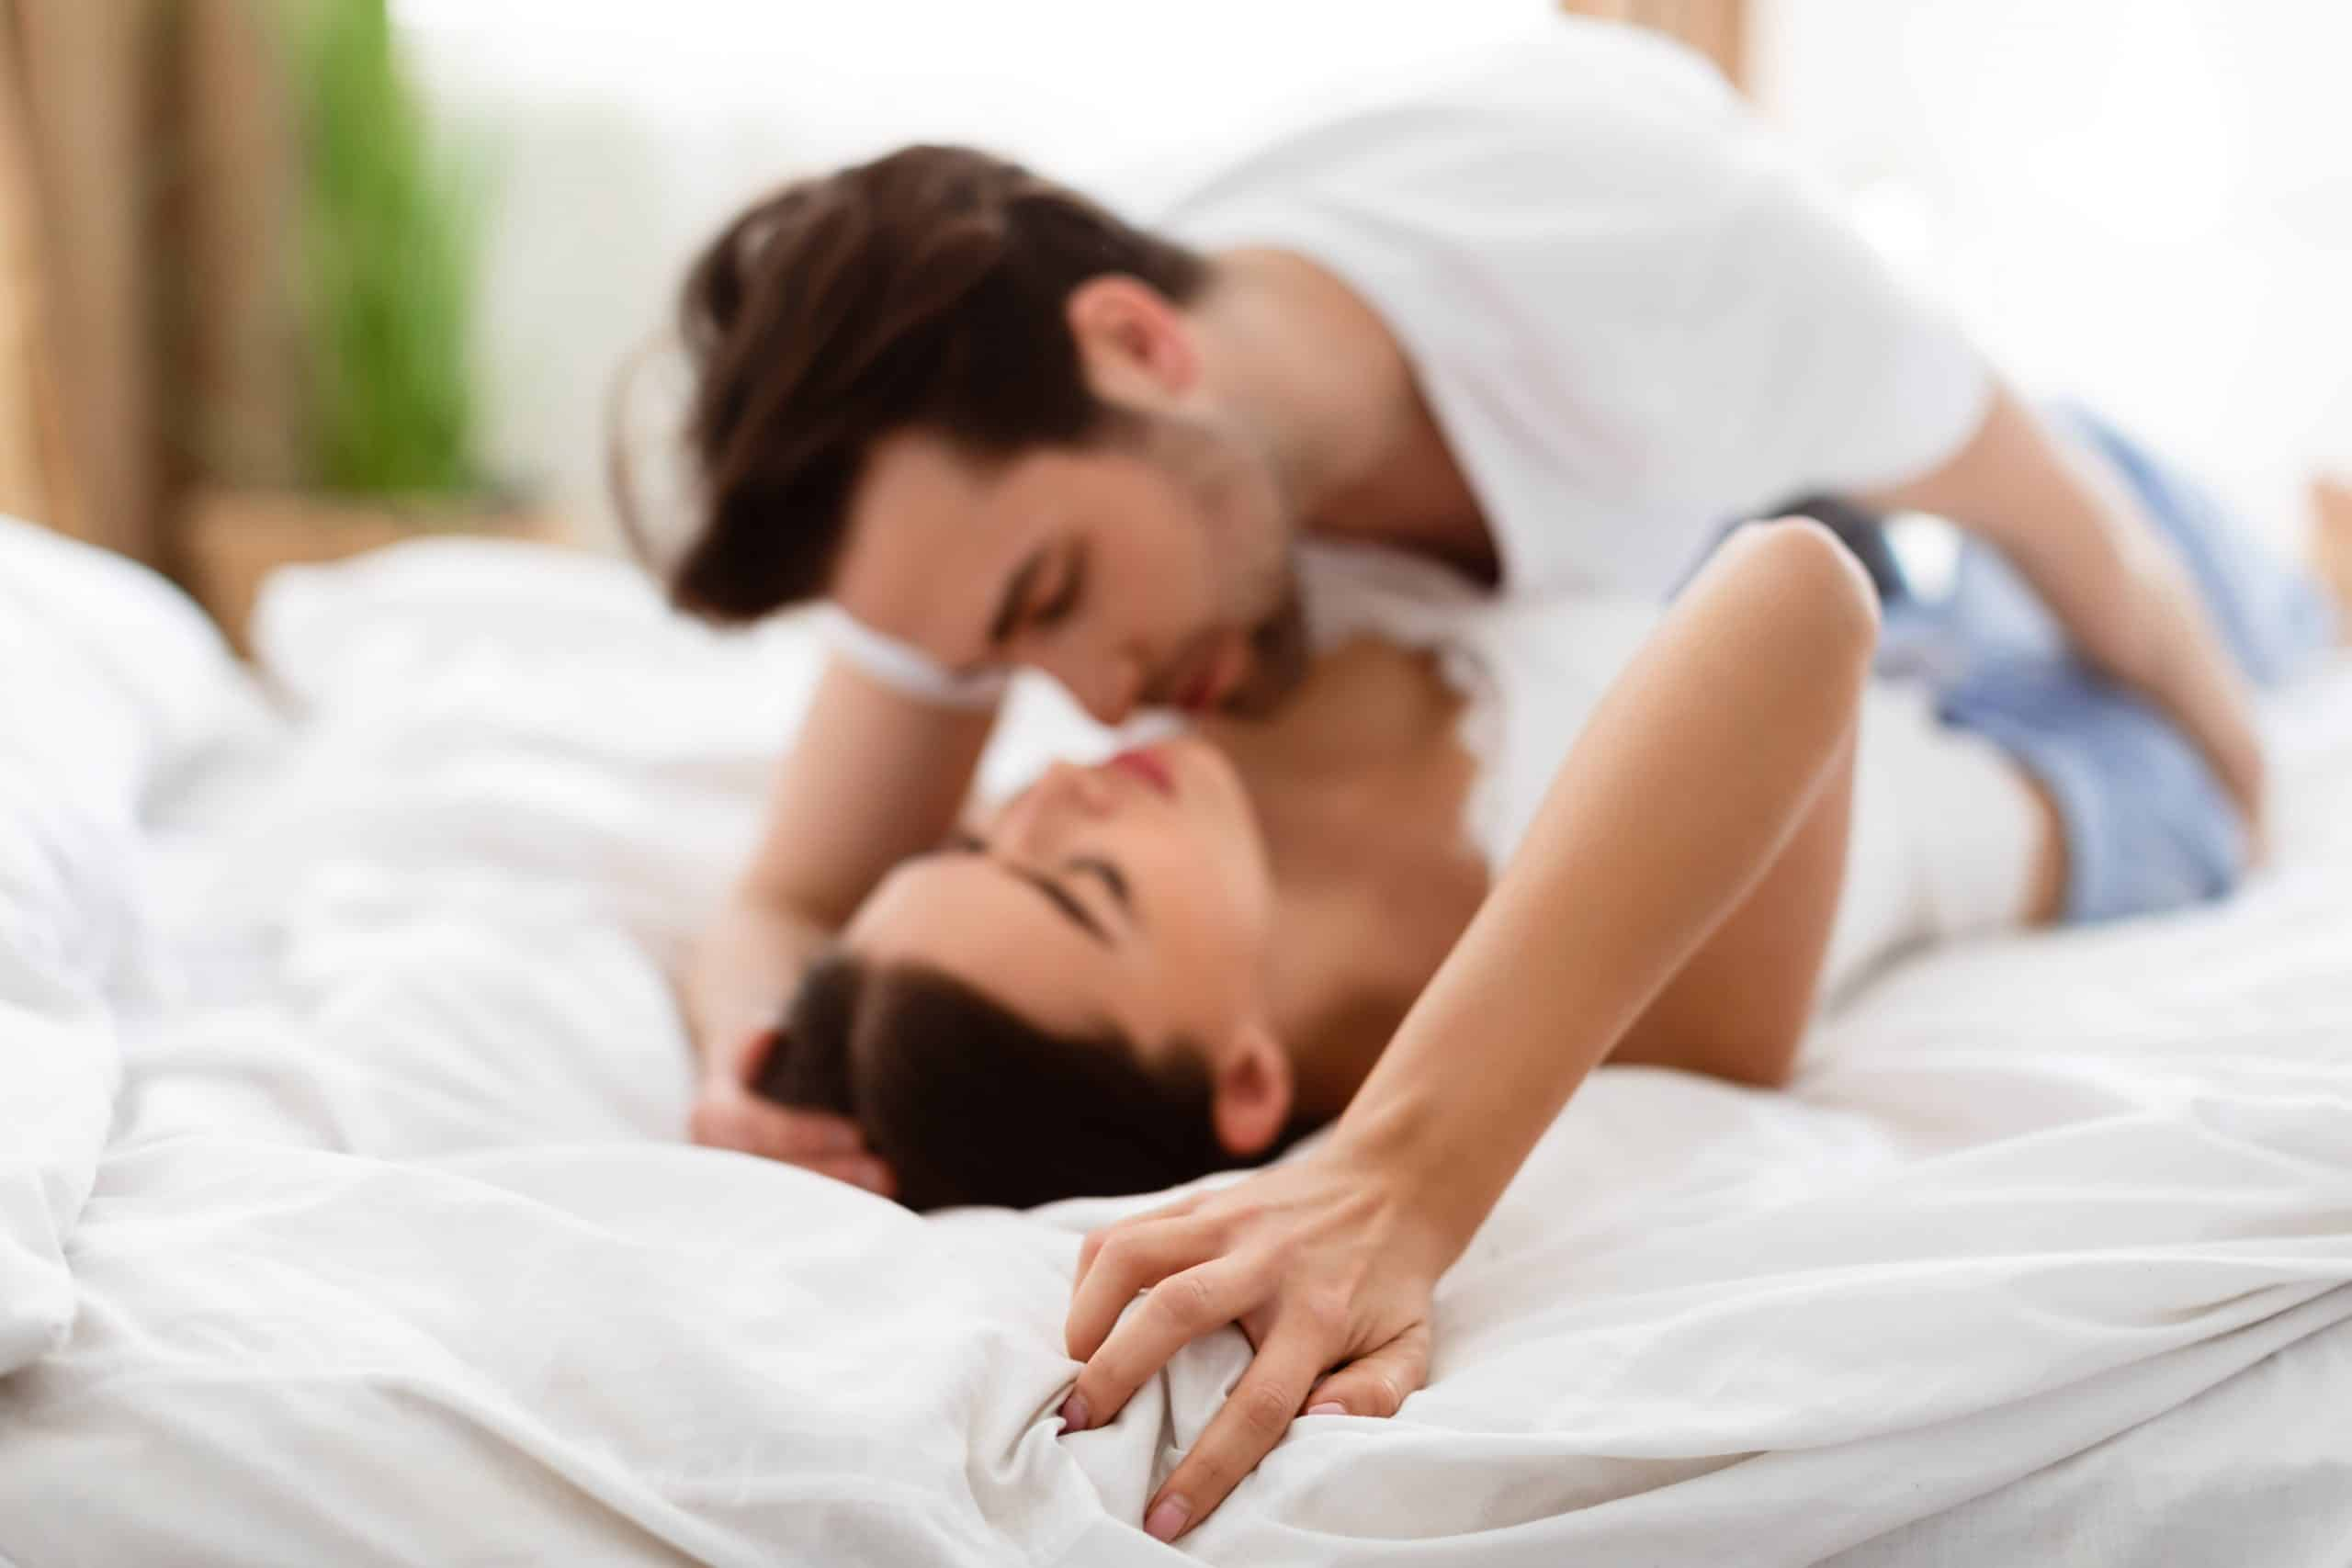 10 Best Strains for Male Arousal